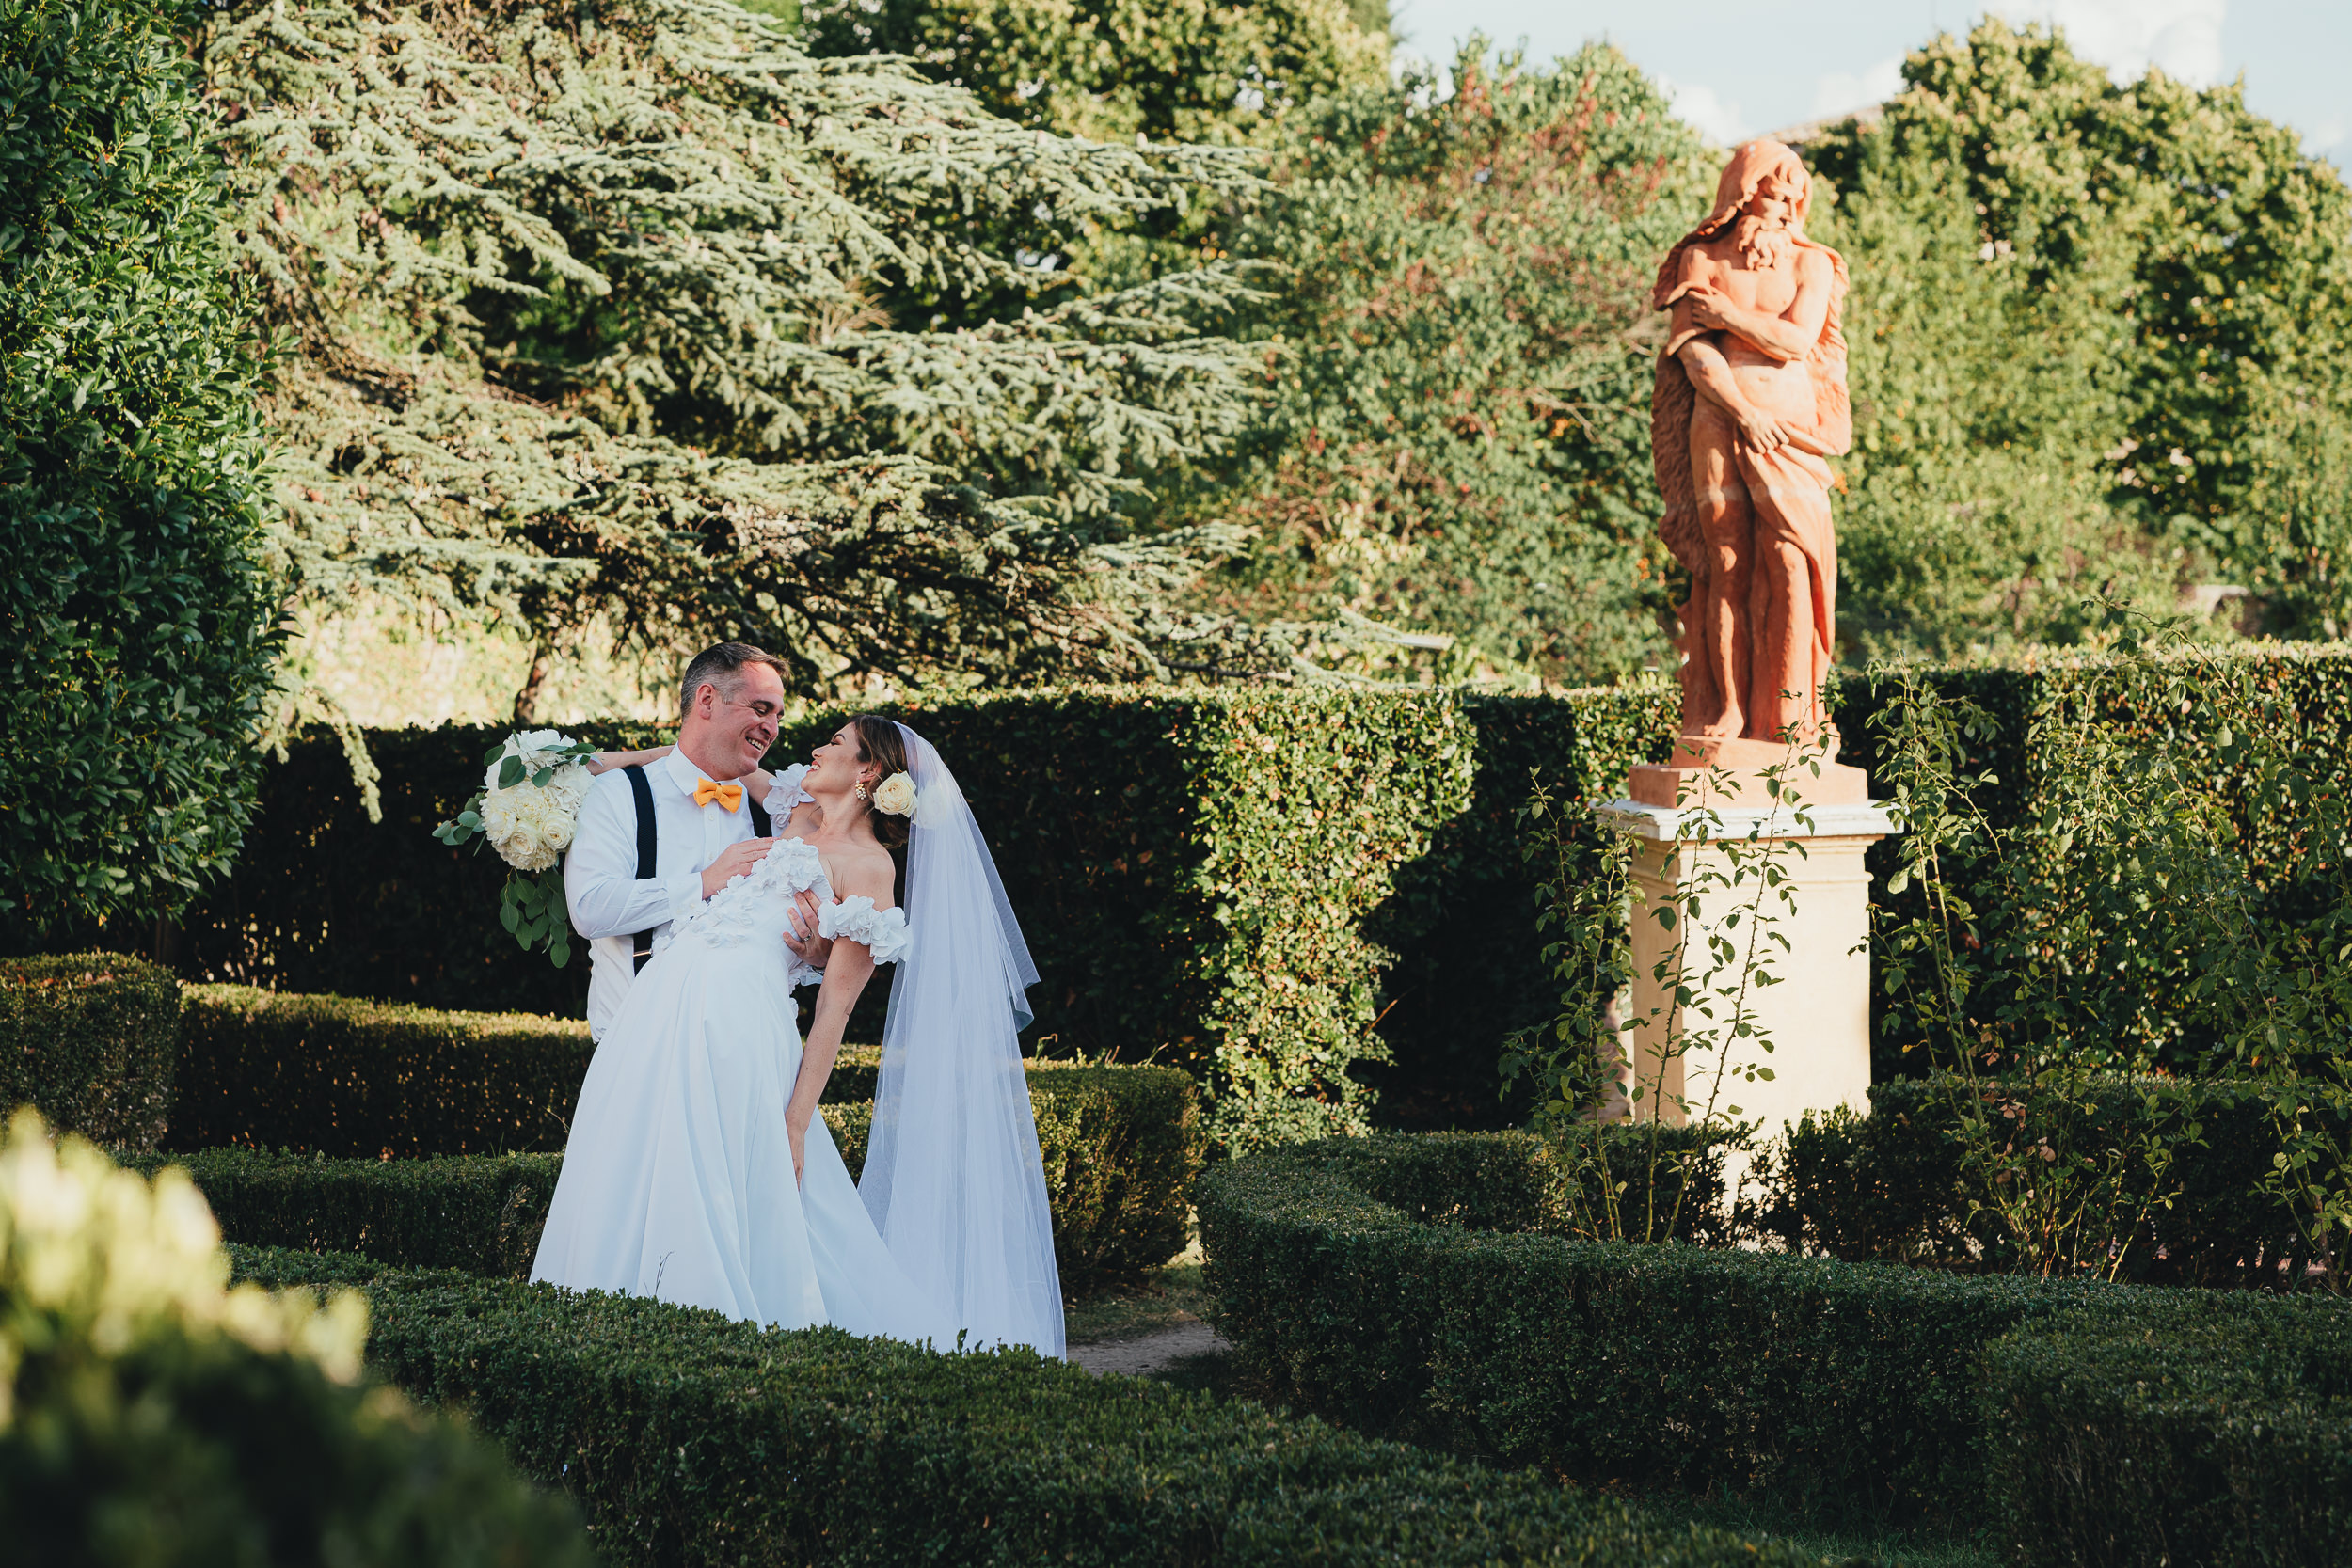 Tuscan Villa Wedding - Portrait of the Bride and Groom in the Italian Garden